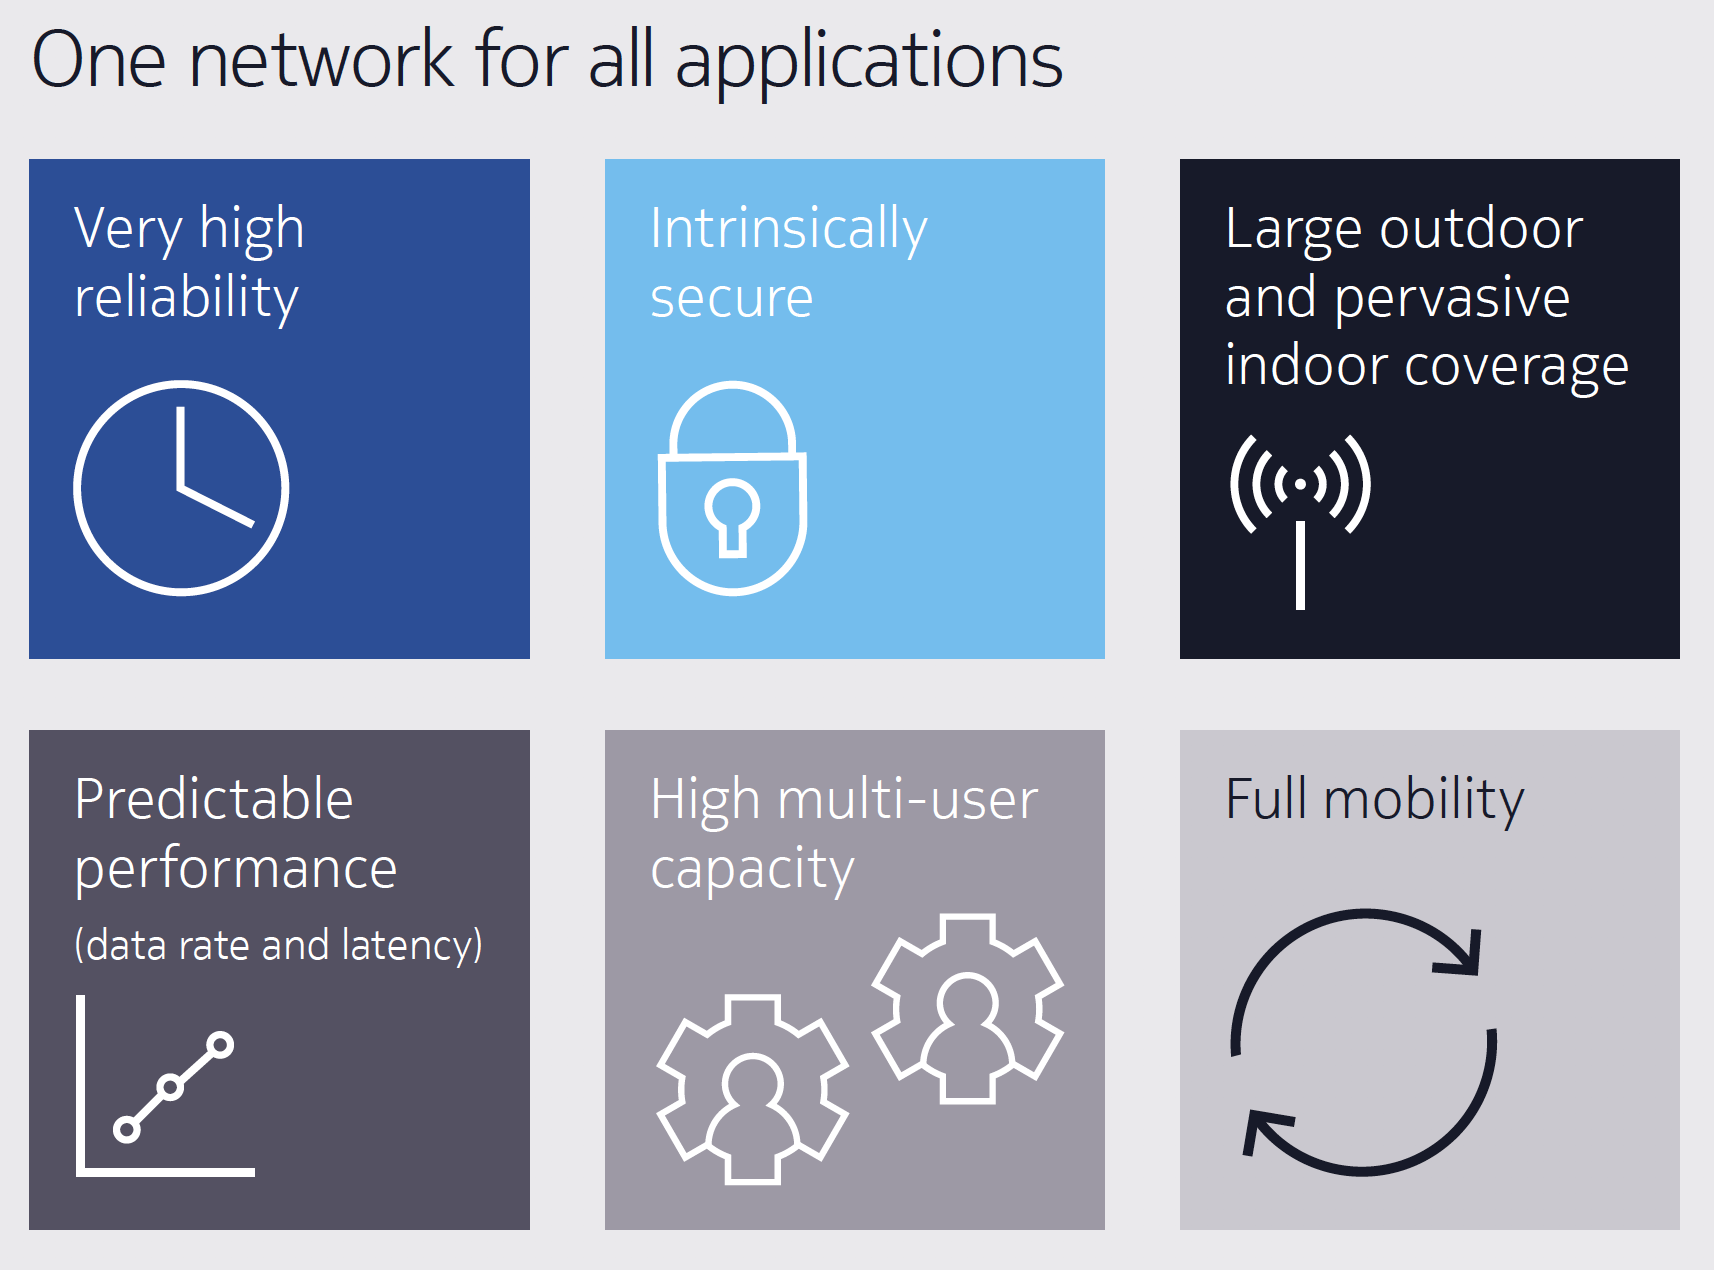 Figure 3. The capabilities of 3GPP technologies such as 4G/LTE and 5G.